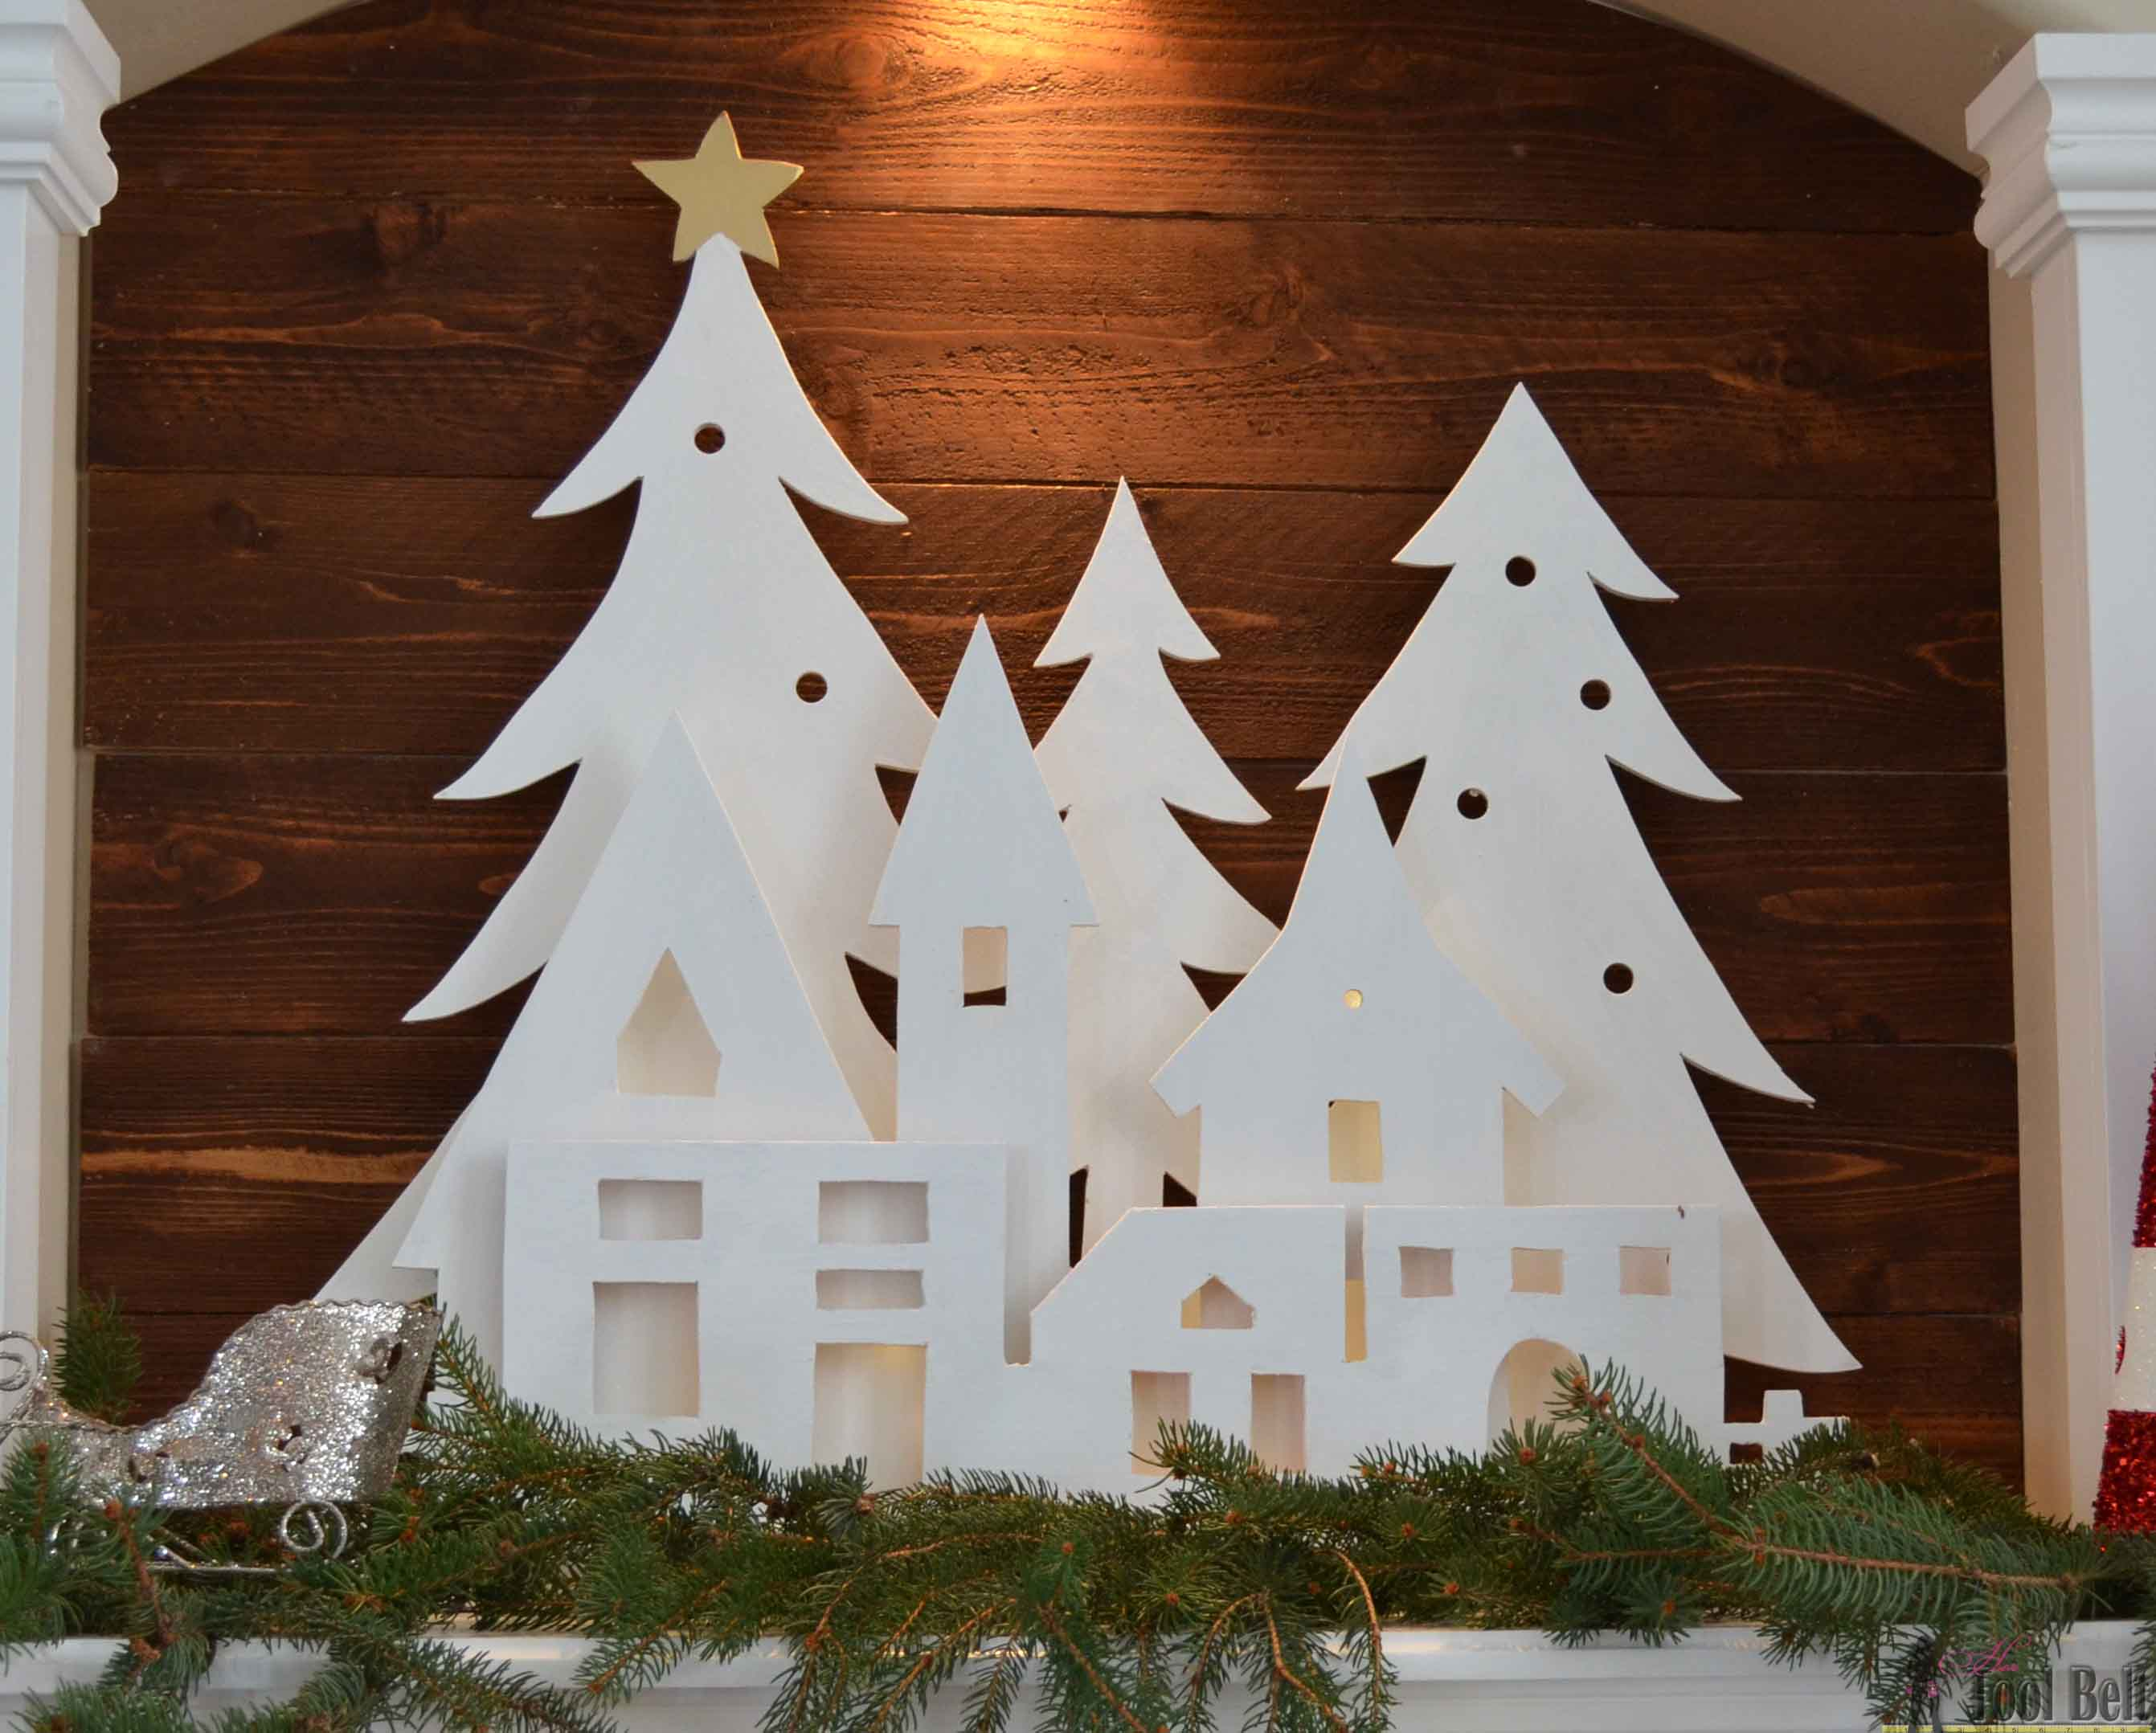 Diy Christmas Village Silhouette Mantel Decor Her Tool Belt